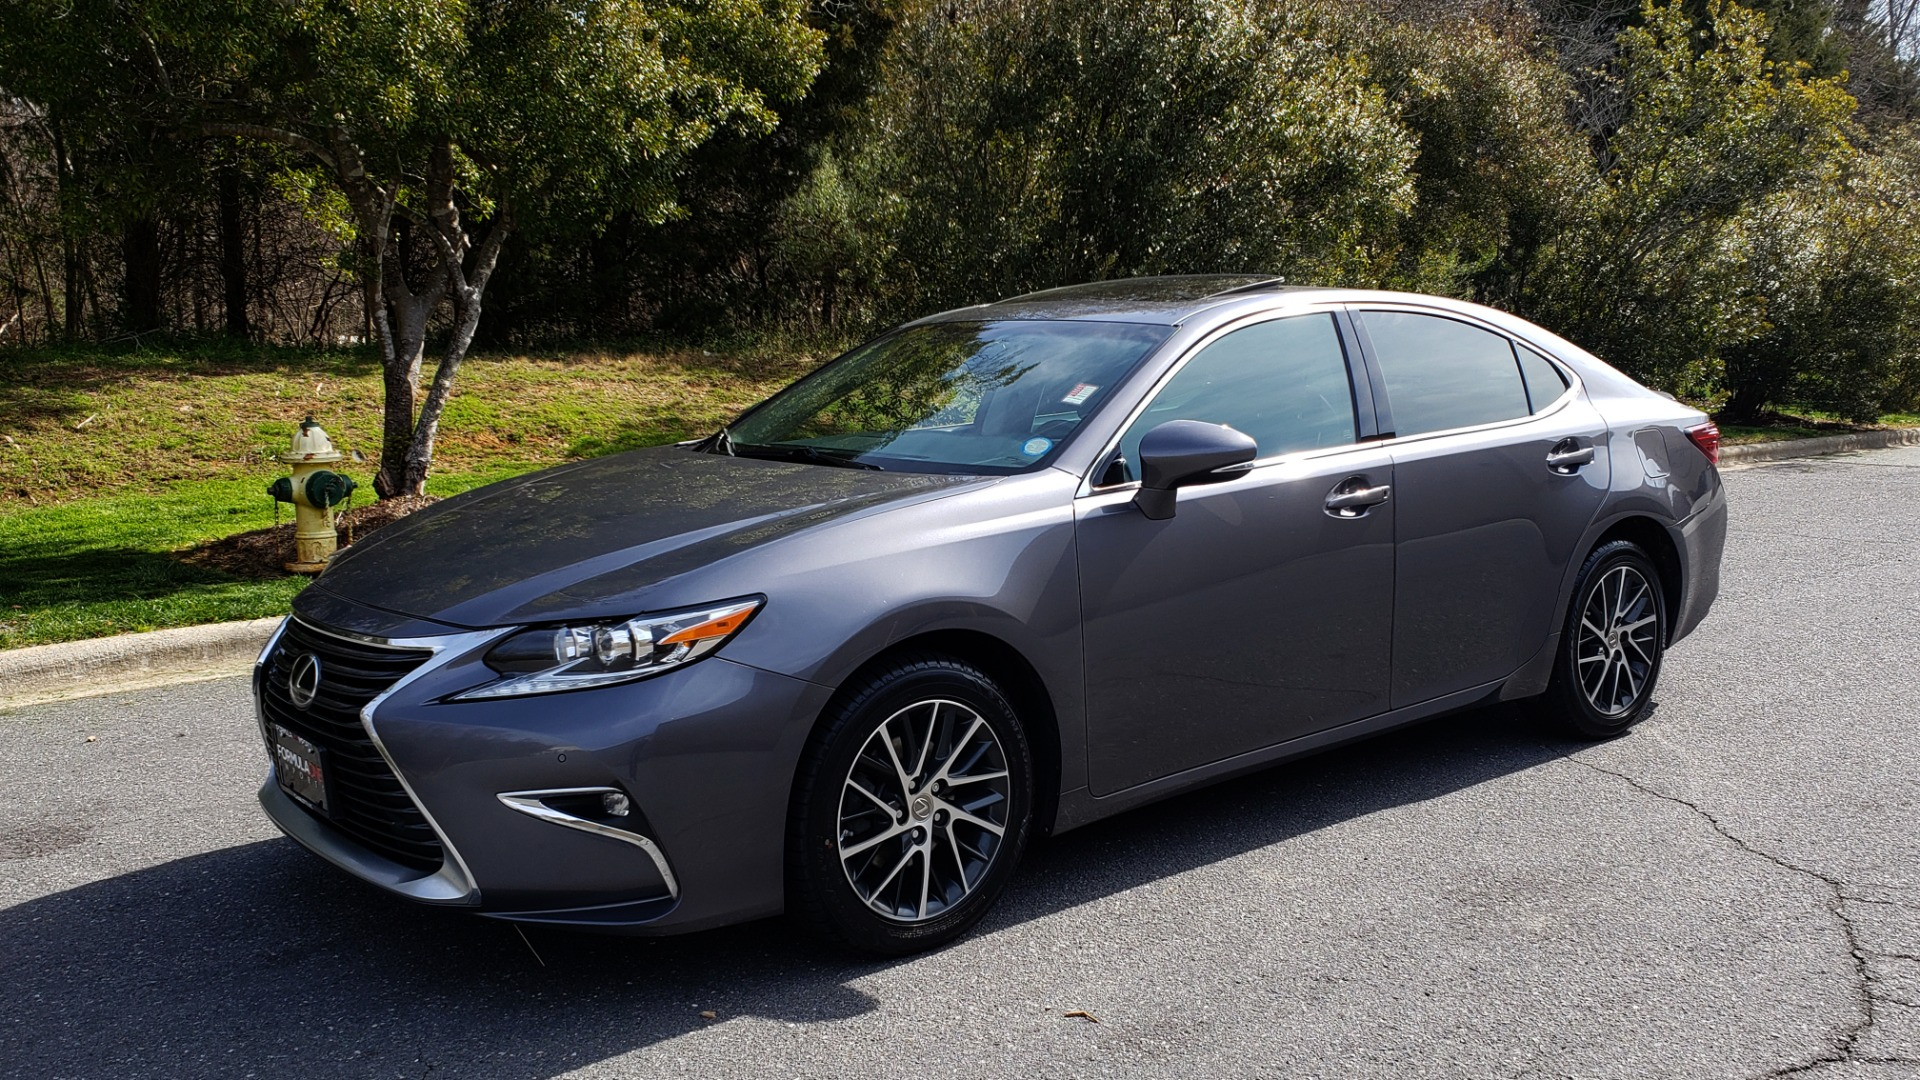 Used 2016 Lexus ES 350 4-DR PREMIUM / SUNROOF / BSM / REARVIEW / VENT STS for sale Sold at Formula Imports in Charlotte NC 28227 1